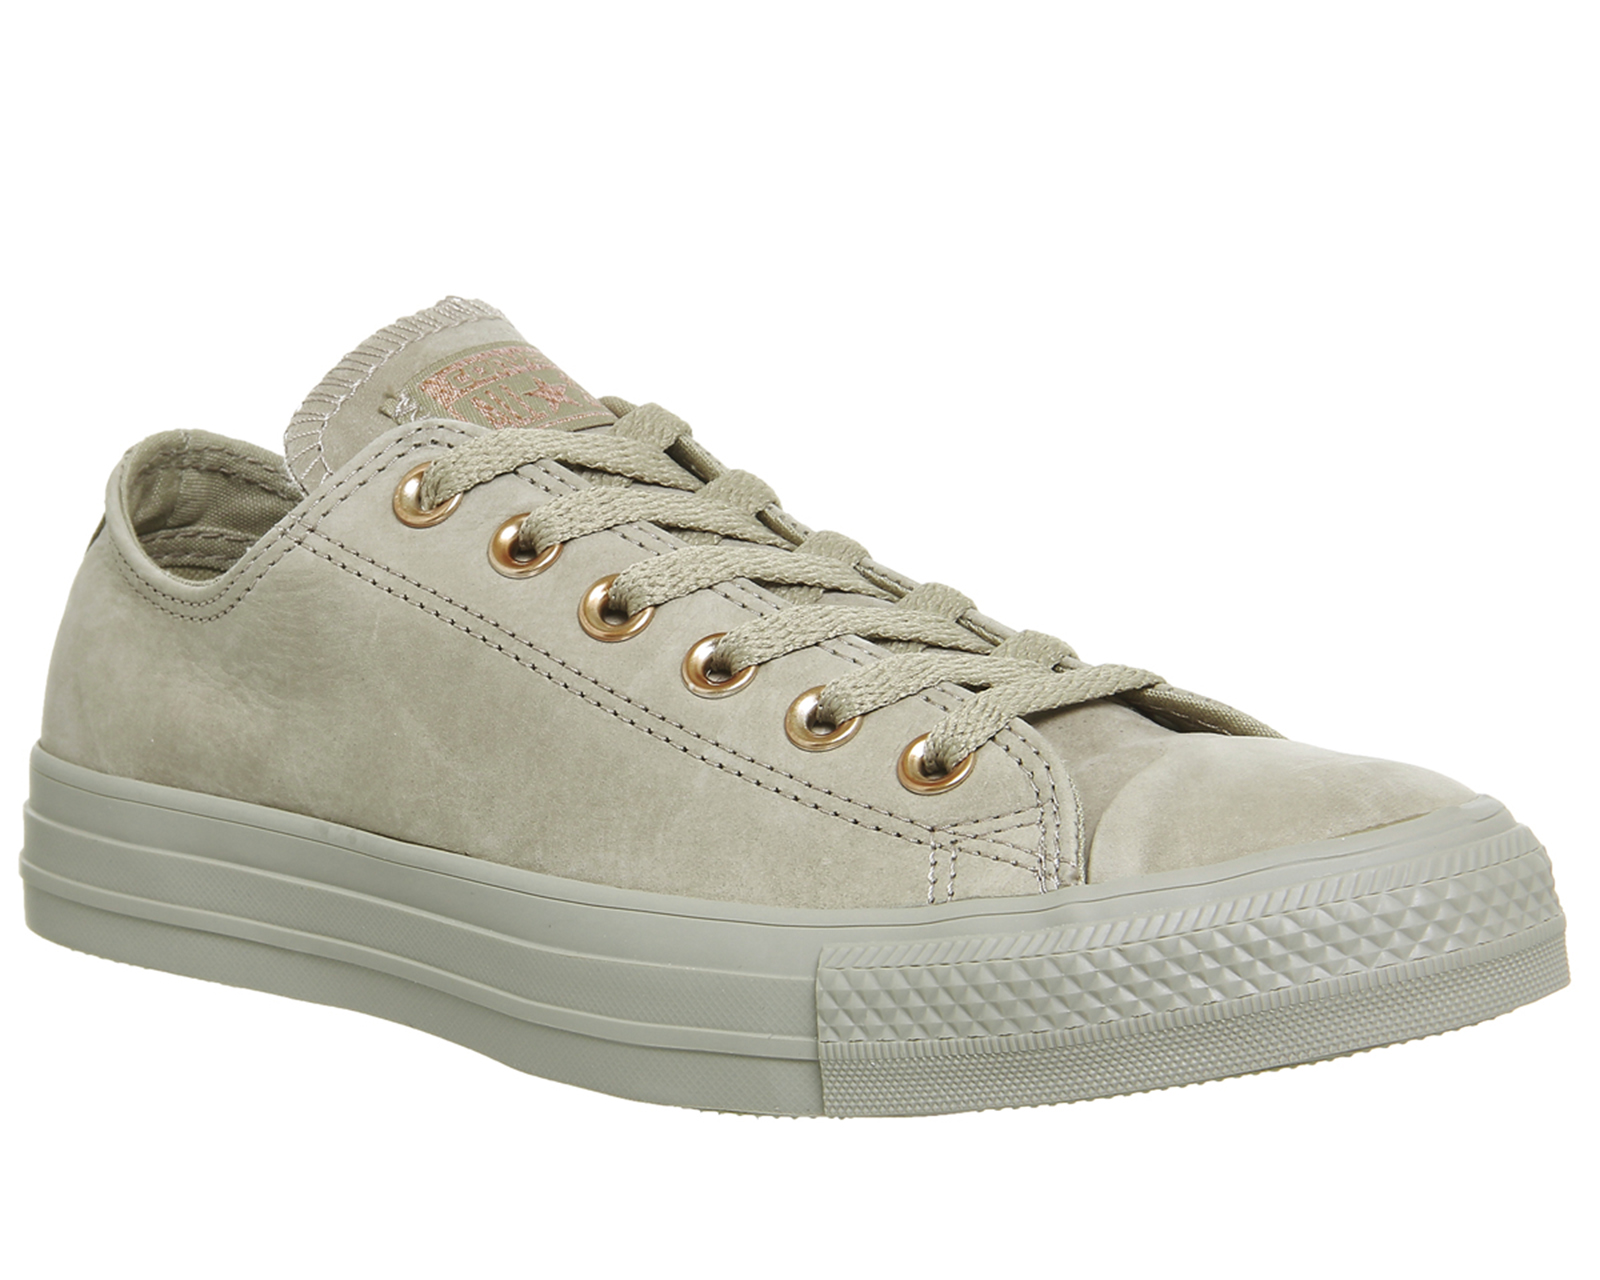 2ad3fa28c6f1fe ... coupon sentinel womens converse all star low leather khaki rose gold  exclusive trainers shoes 7ef2e 3d57b